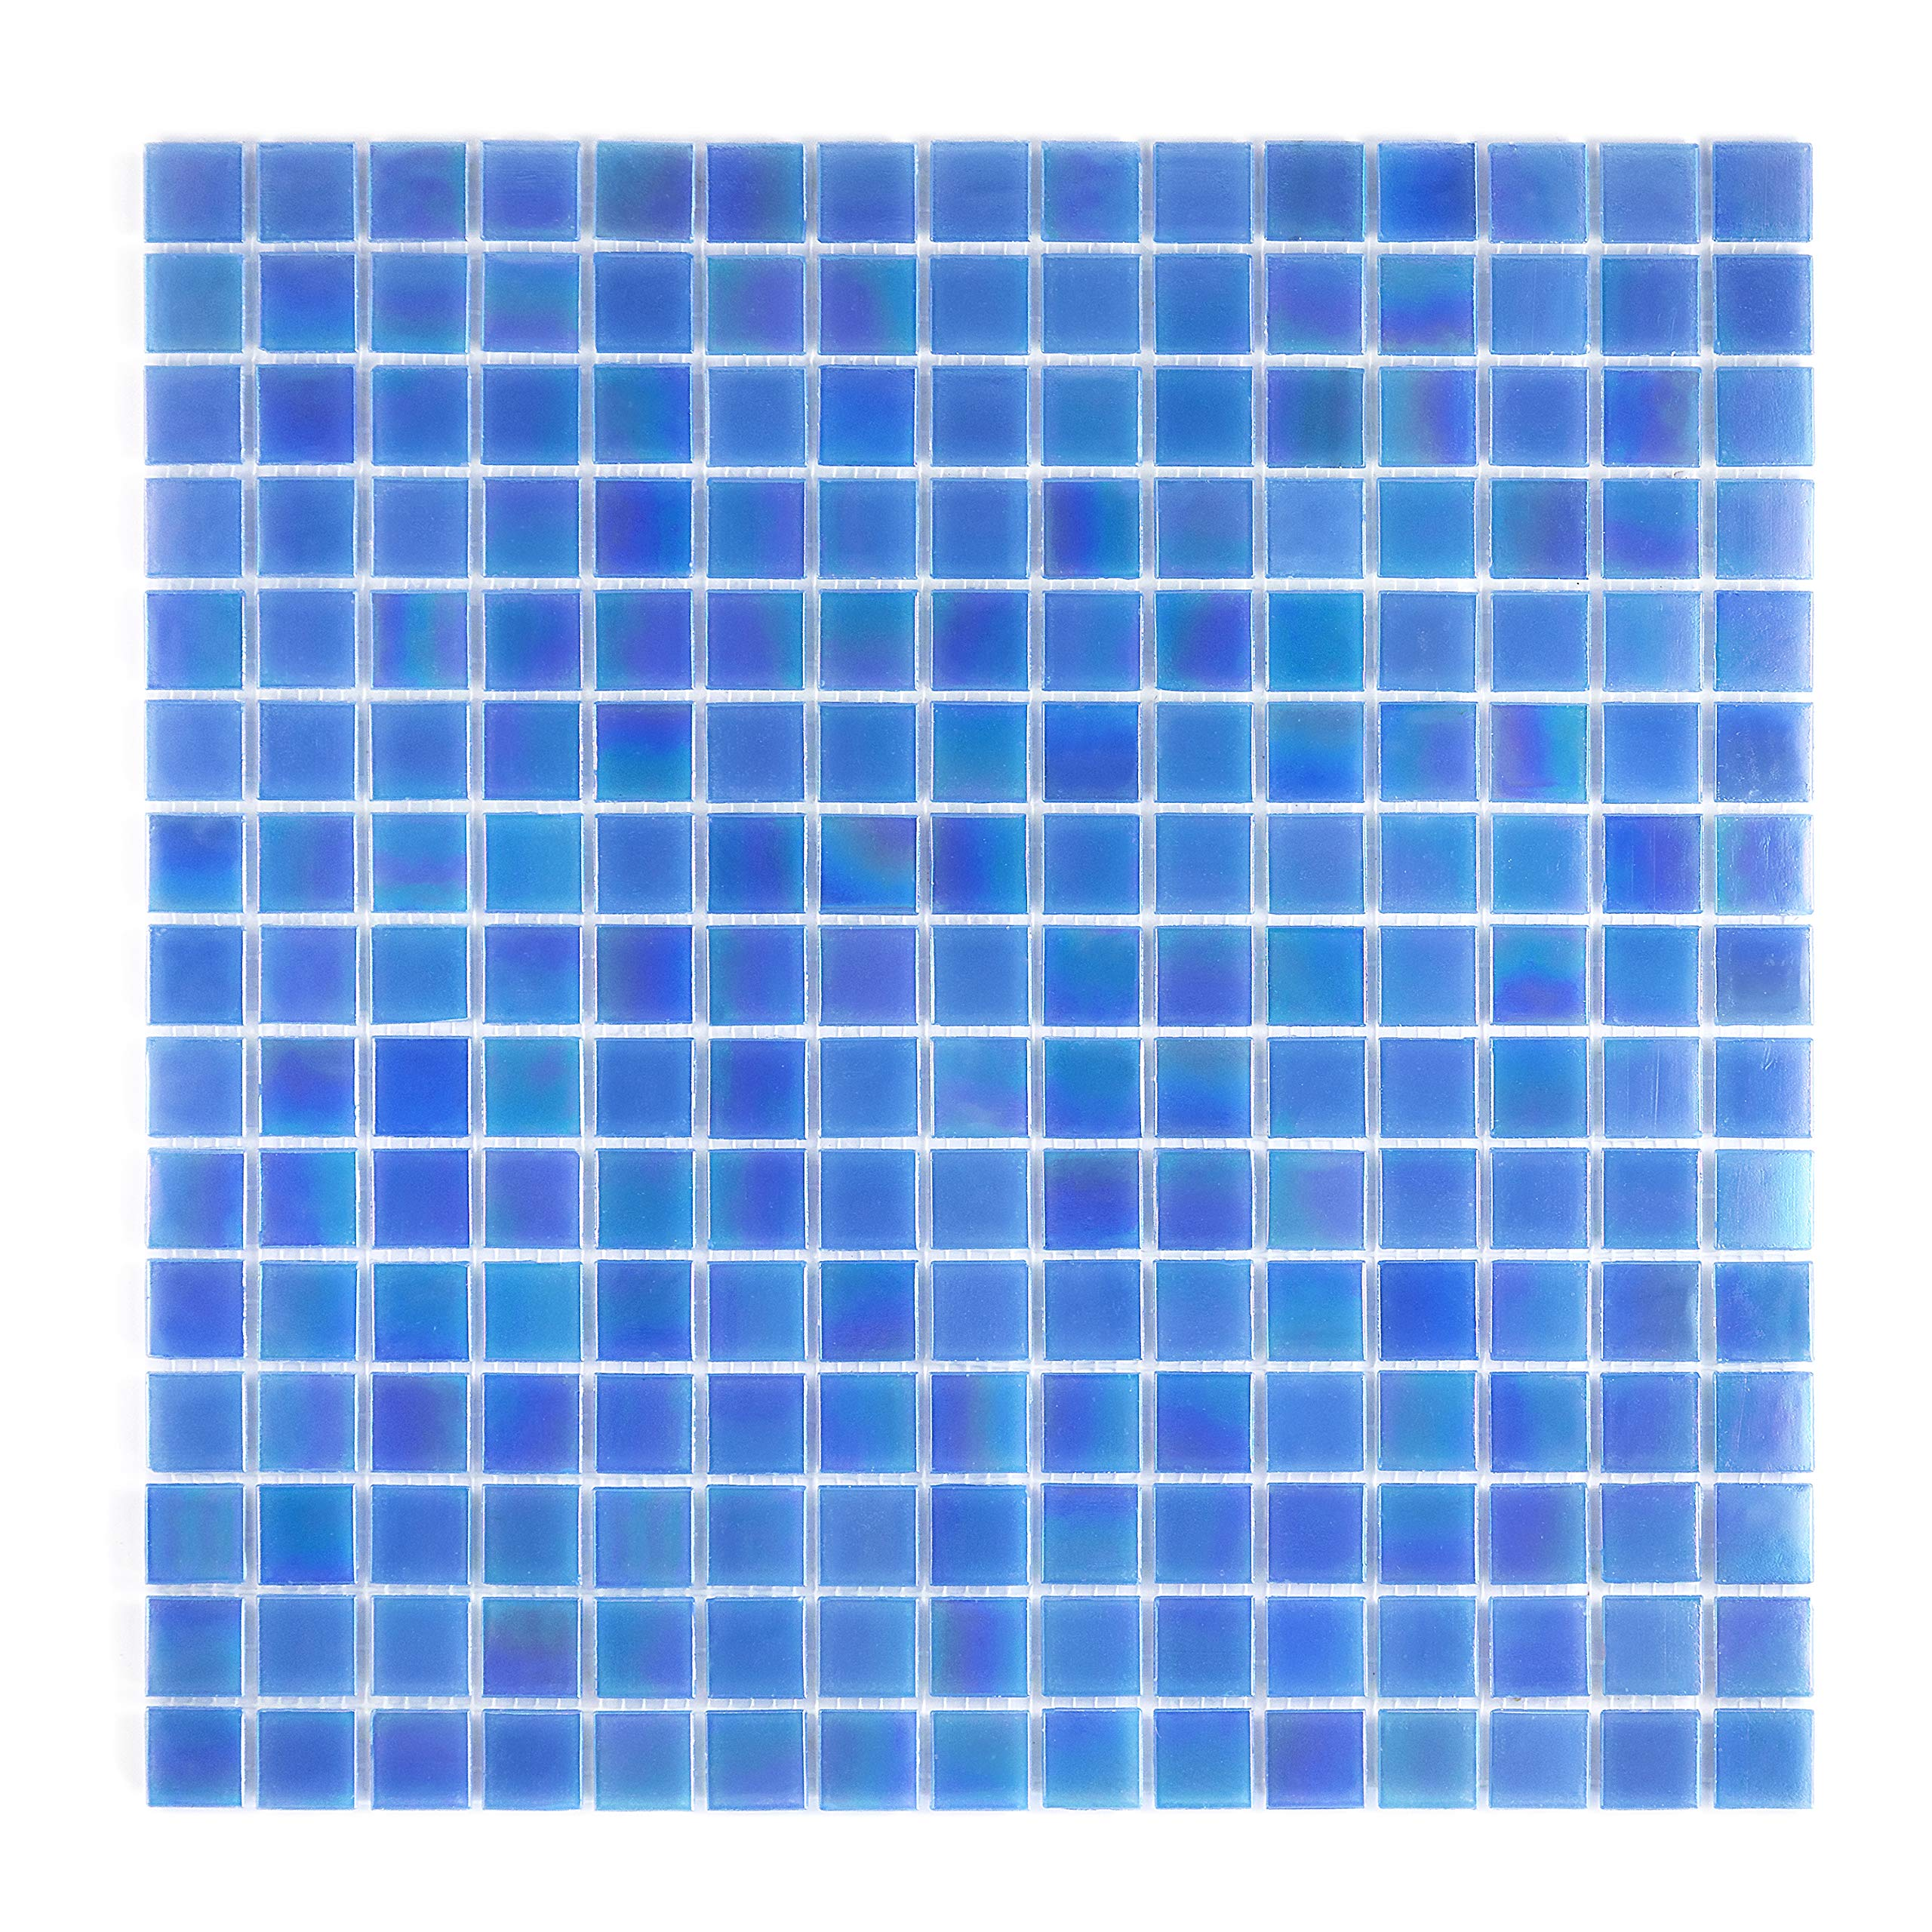 URBN Contemporary Ocean Blue Iridescent Glass Mosaic Tile for Kitchen and Bath - One Box of 20 Sheets (23 SQ FT) by URBN.tiles